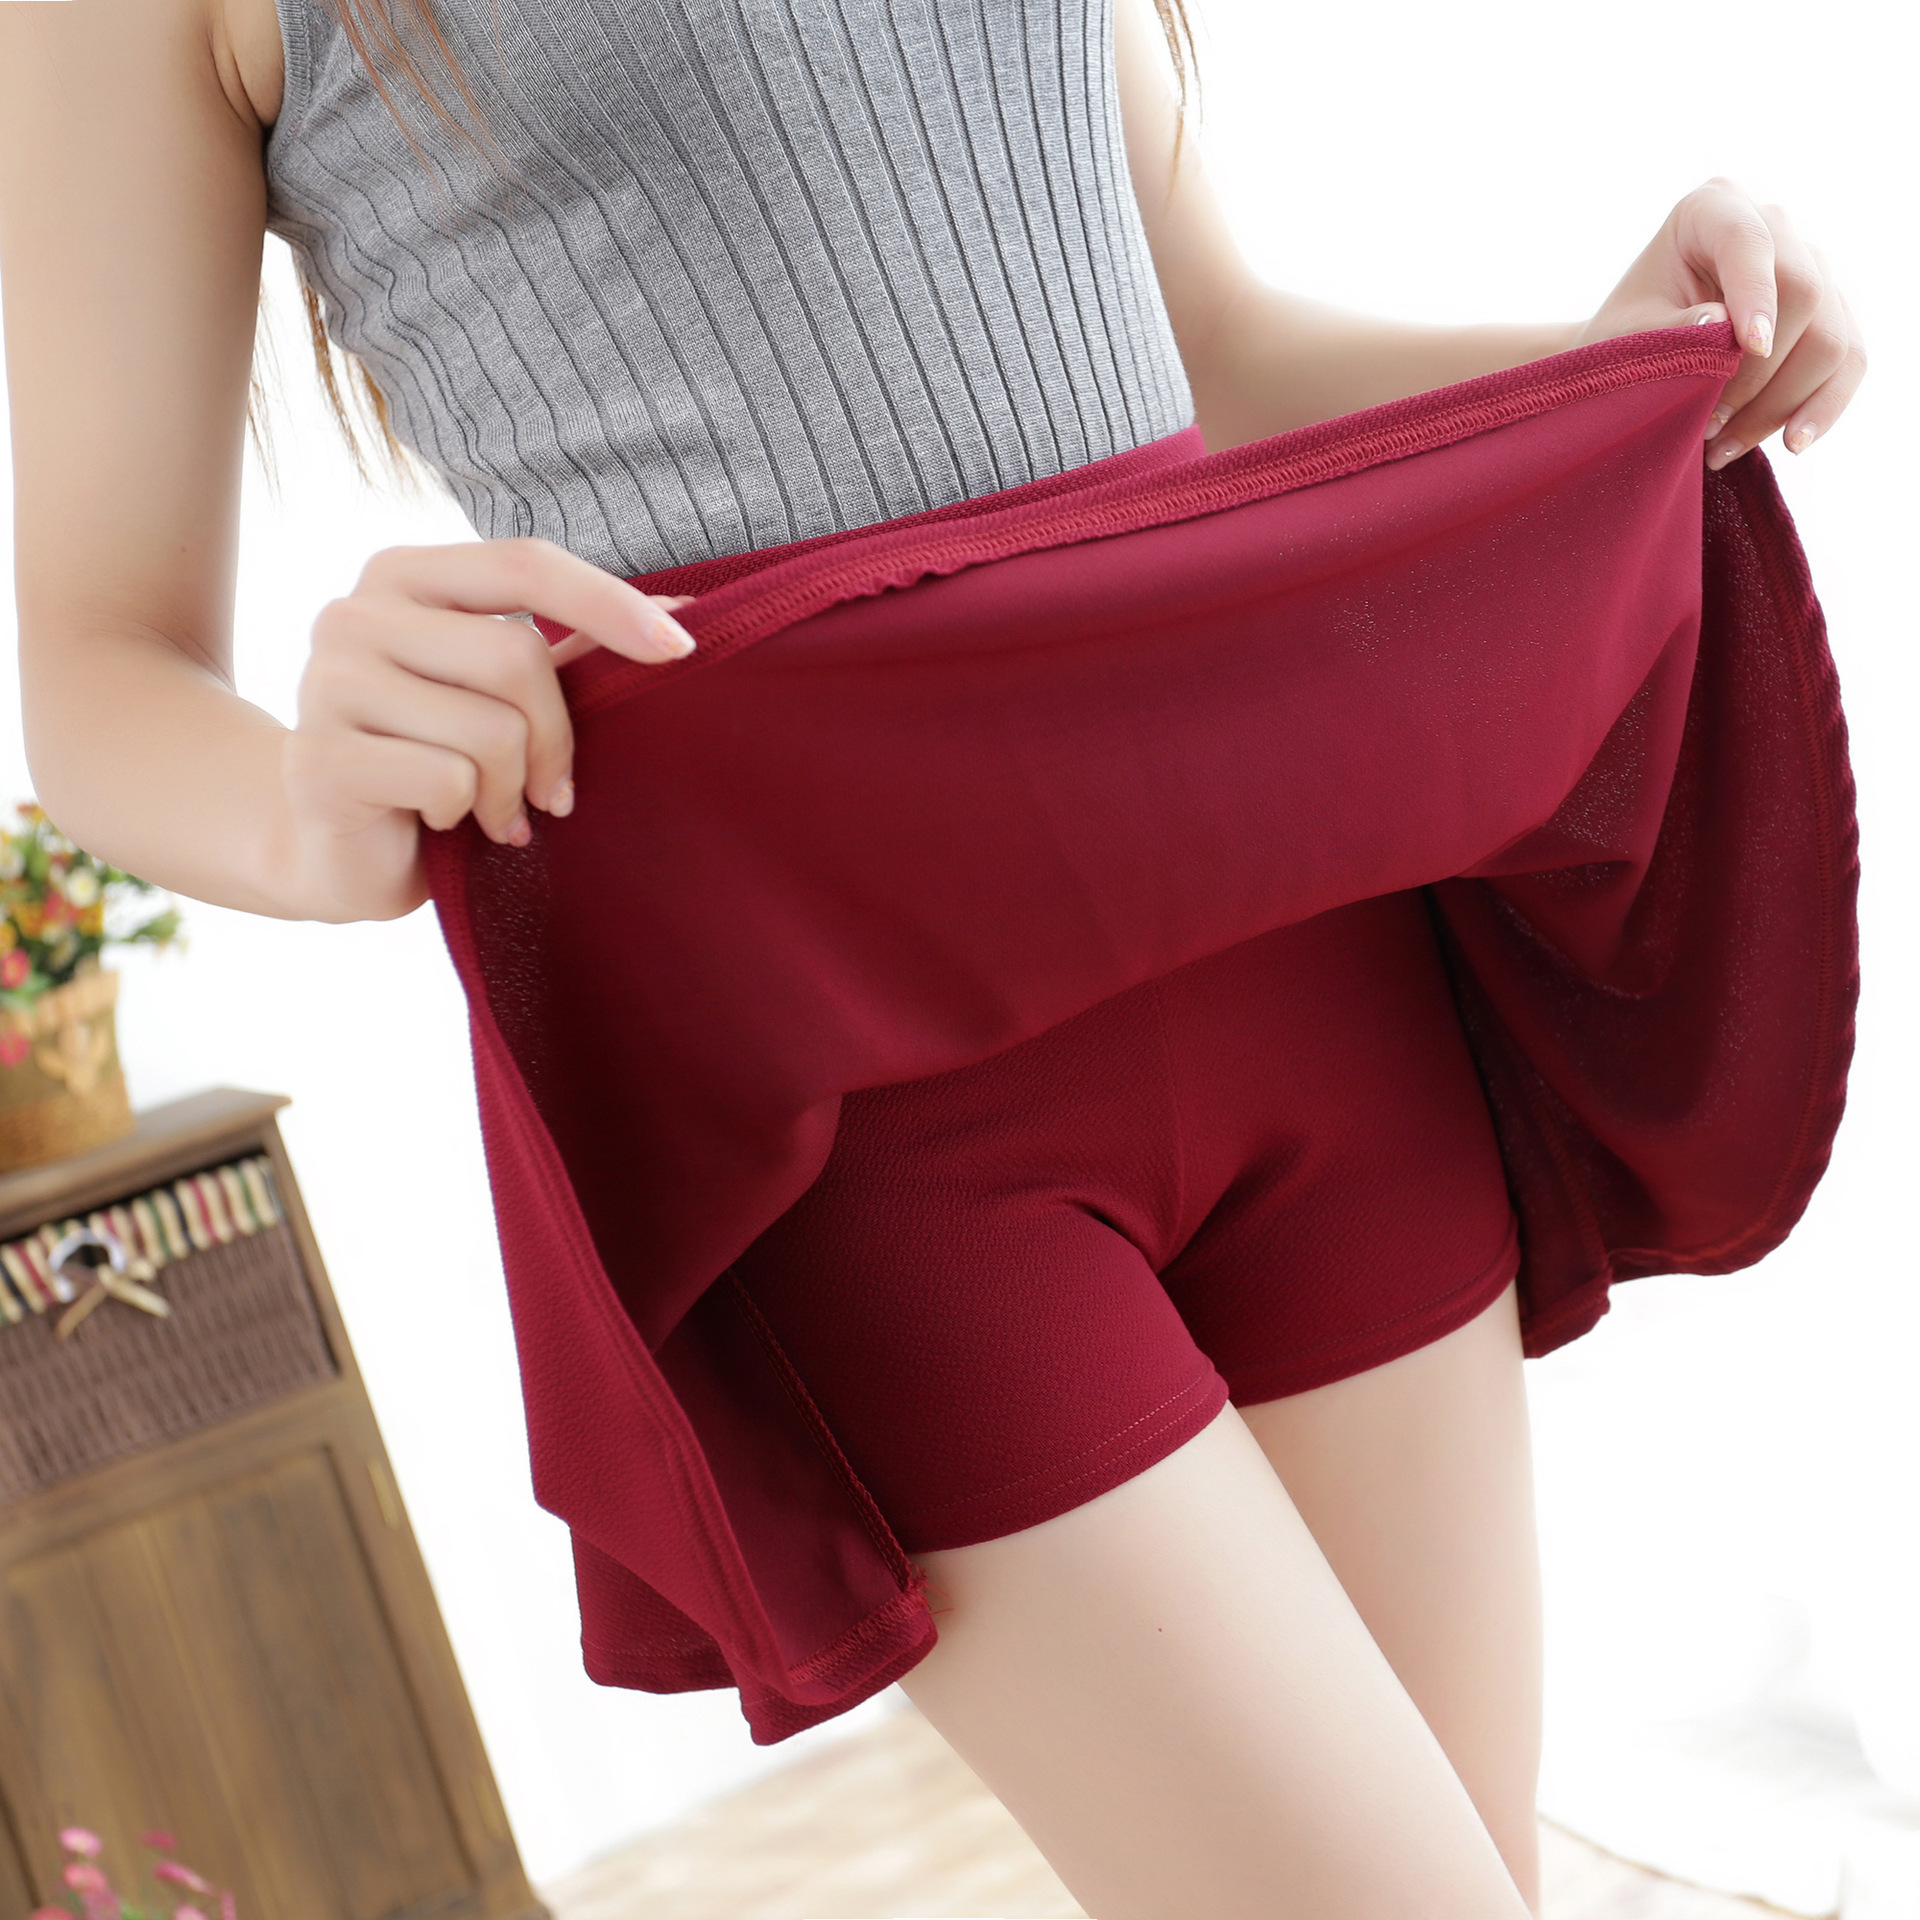 Liva Girl High Waist Elastic Mini Skirts With Safety Pants Women Casual A-line Pleated Skirts Harajuku Kawaii Cute School Skirts